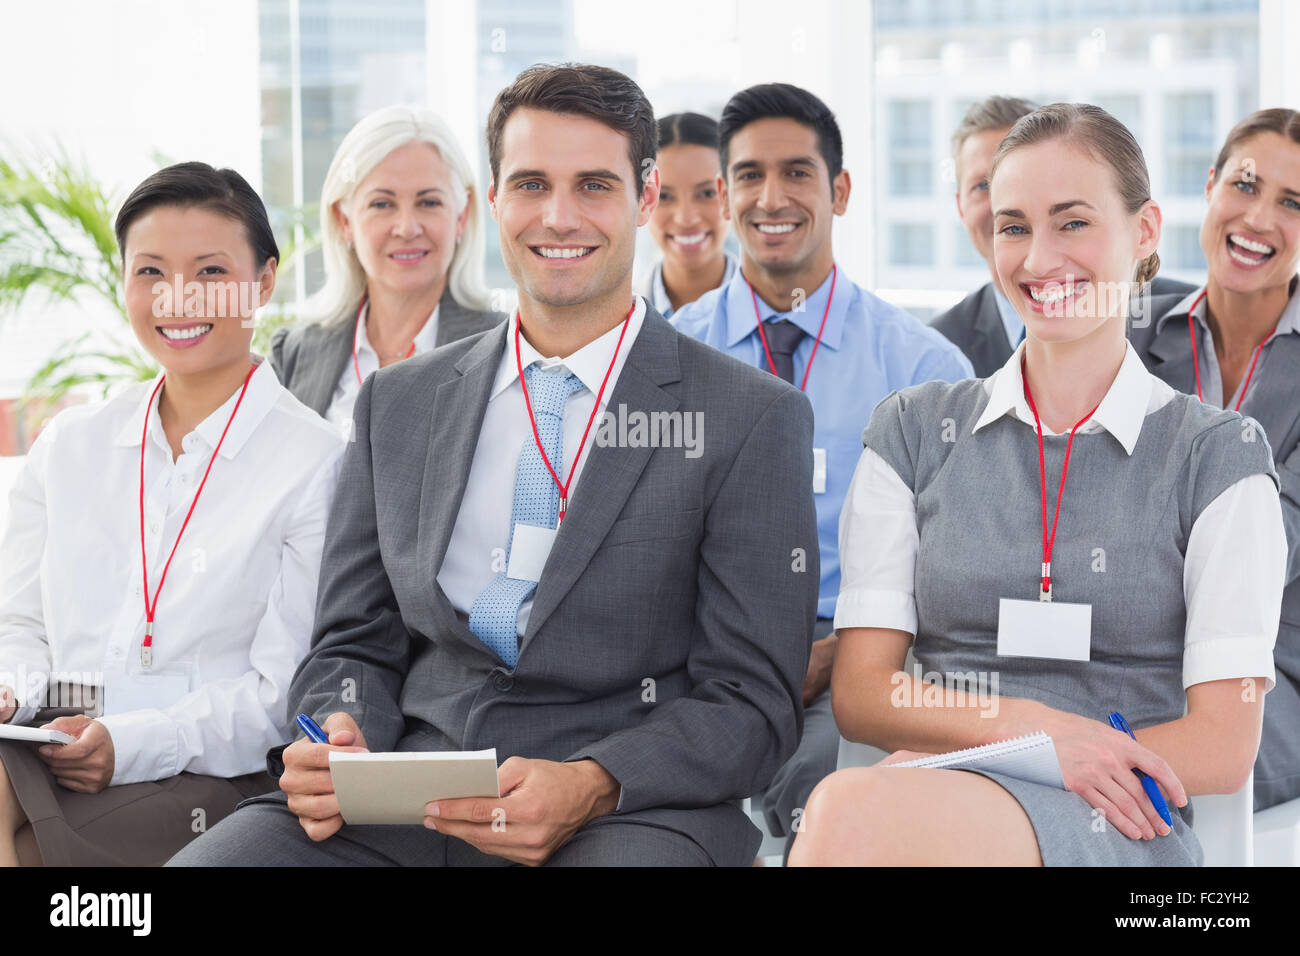 Smiling business people looking at camera during meeting Photo Stock